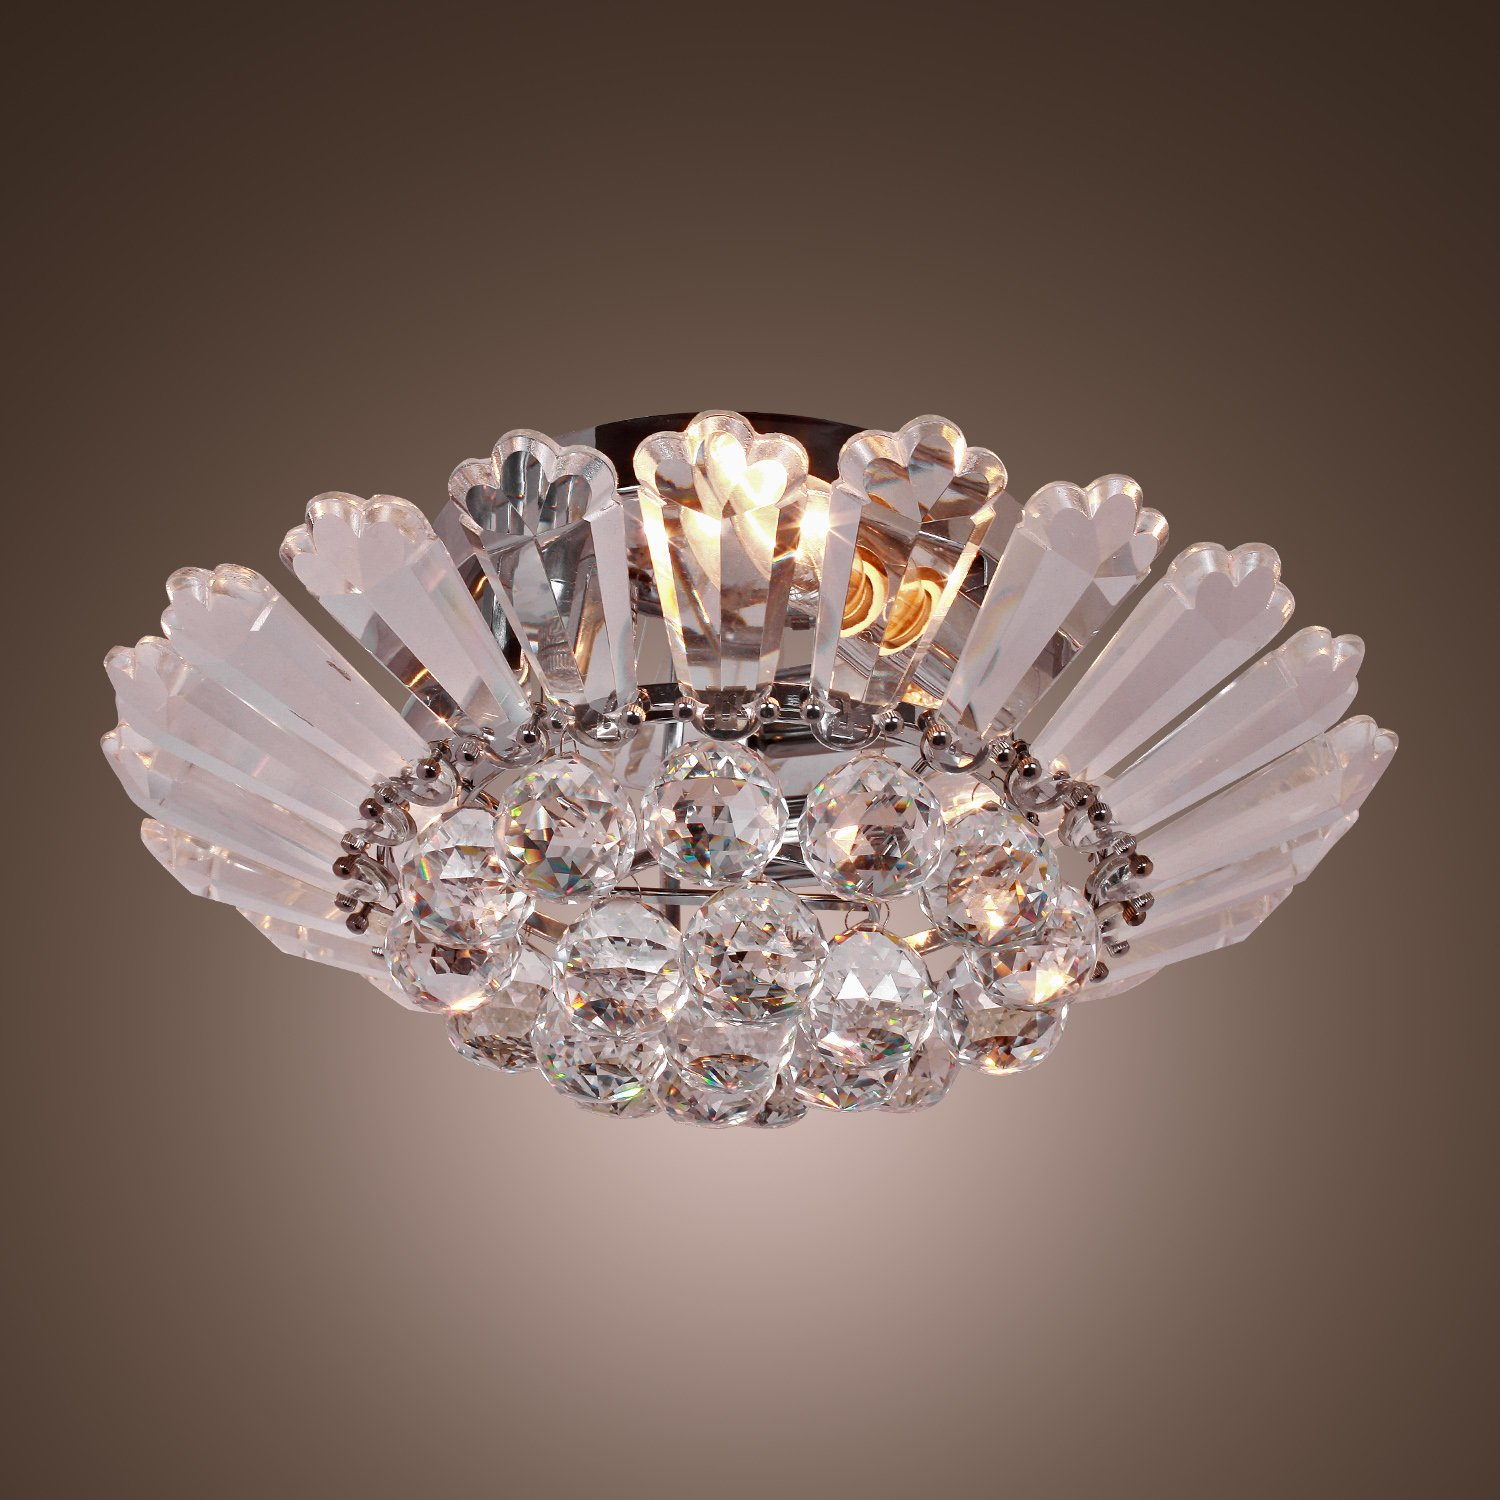 Lightinthebox modern semi flush mount in crystal feature home lightinthebox modern semi flush mount in crystal feature home ceiling light fixture chandeliers lighting for dining room bedroom living room close to mozeypictures Image collections